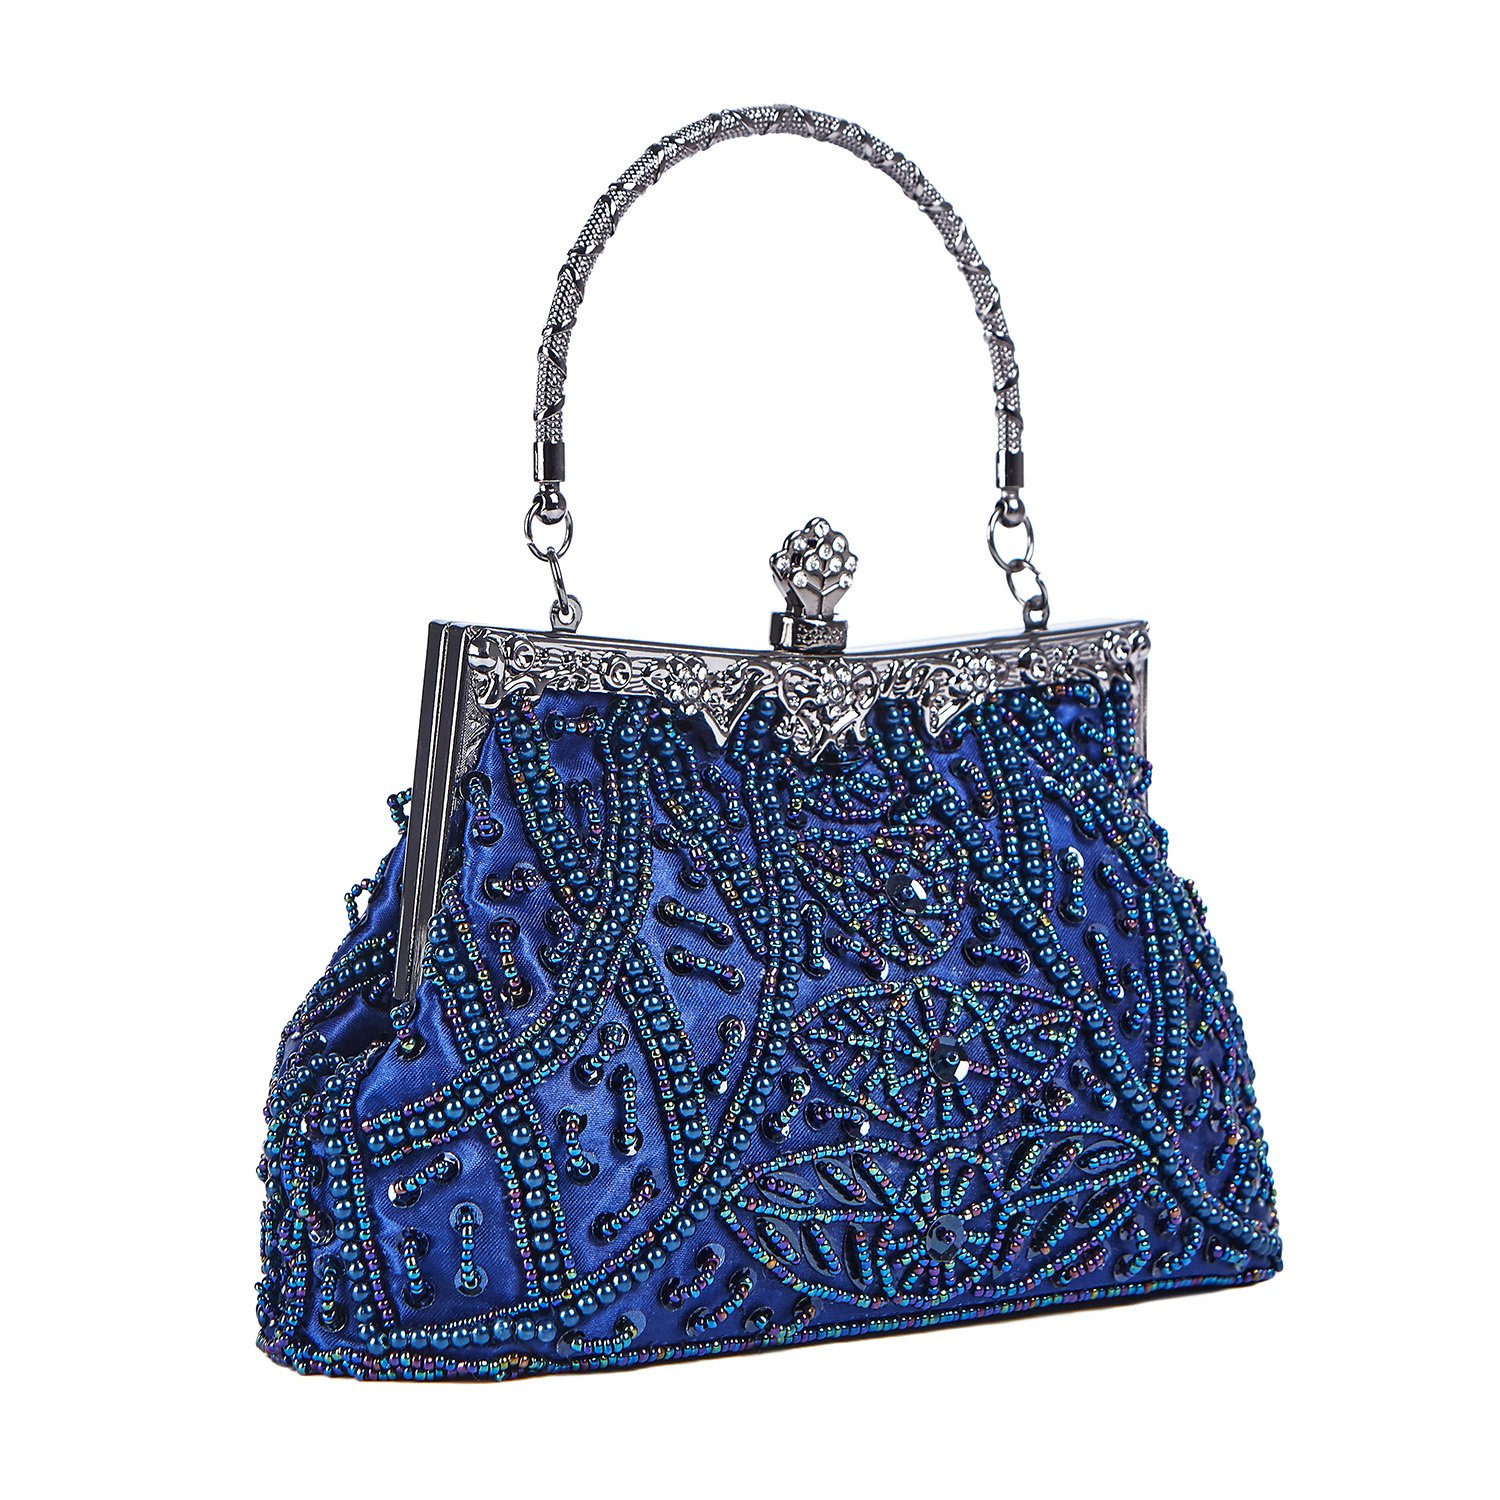 Fashion Vintage Style Handbag Beaded Sequined Evening Bag Wedding Party Handbag Rhinestone Clutch Purse (Blue)